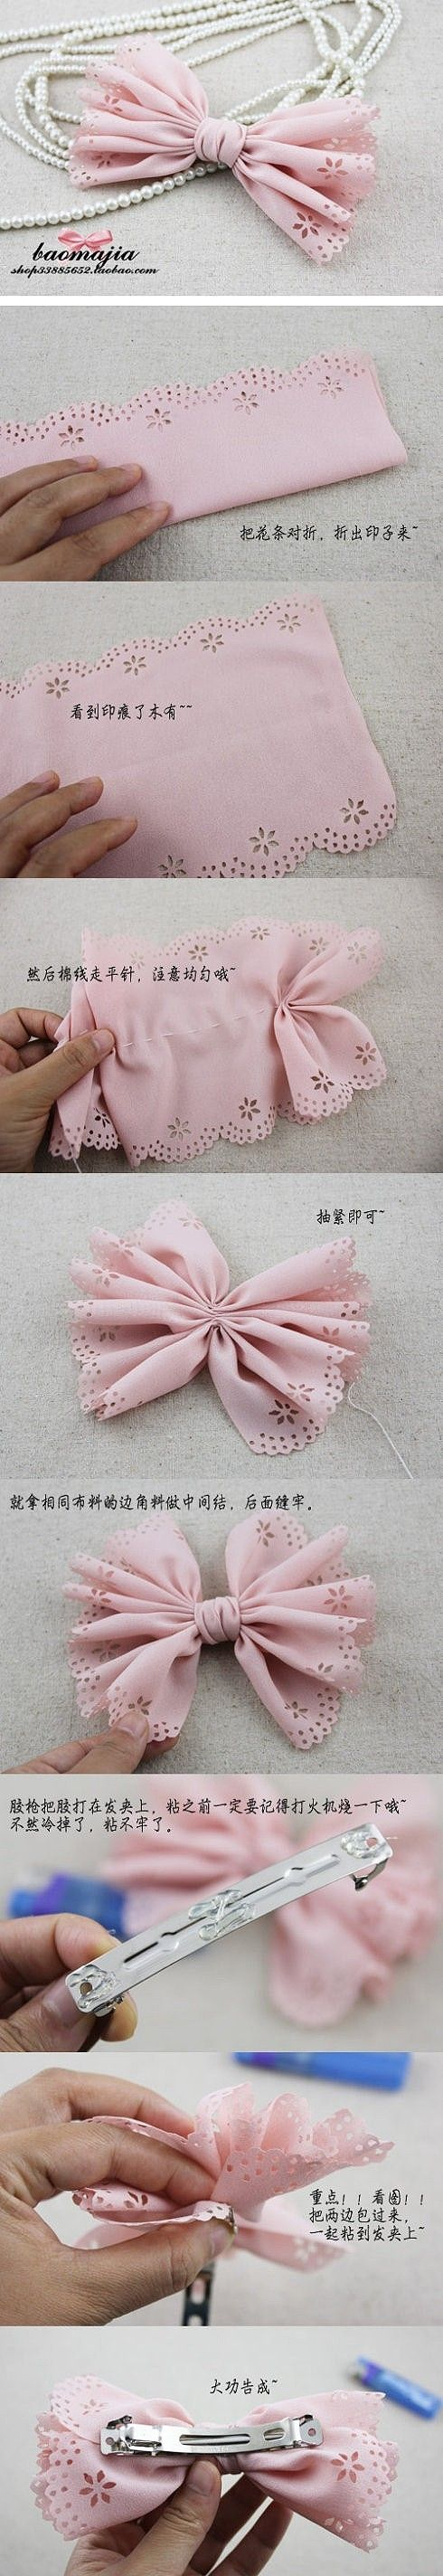 Diy bow. Love the material used! Could even put it on the pearls as a necklace for Kara